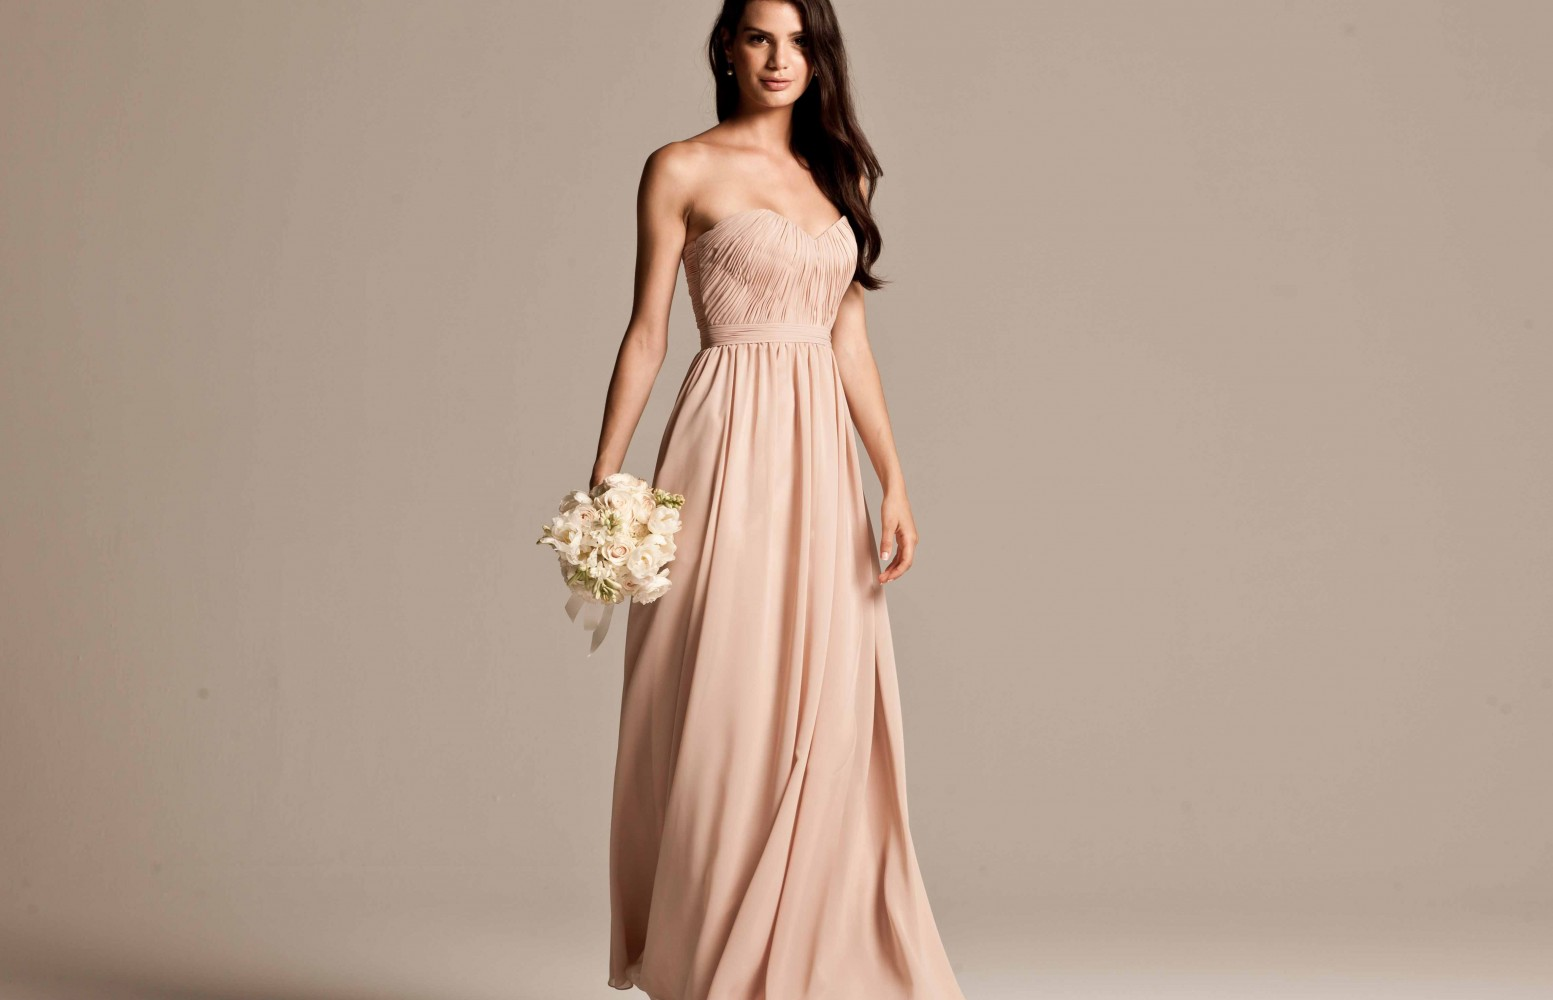 Beige bridesmaid dresses for Image of wedding dresses